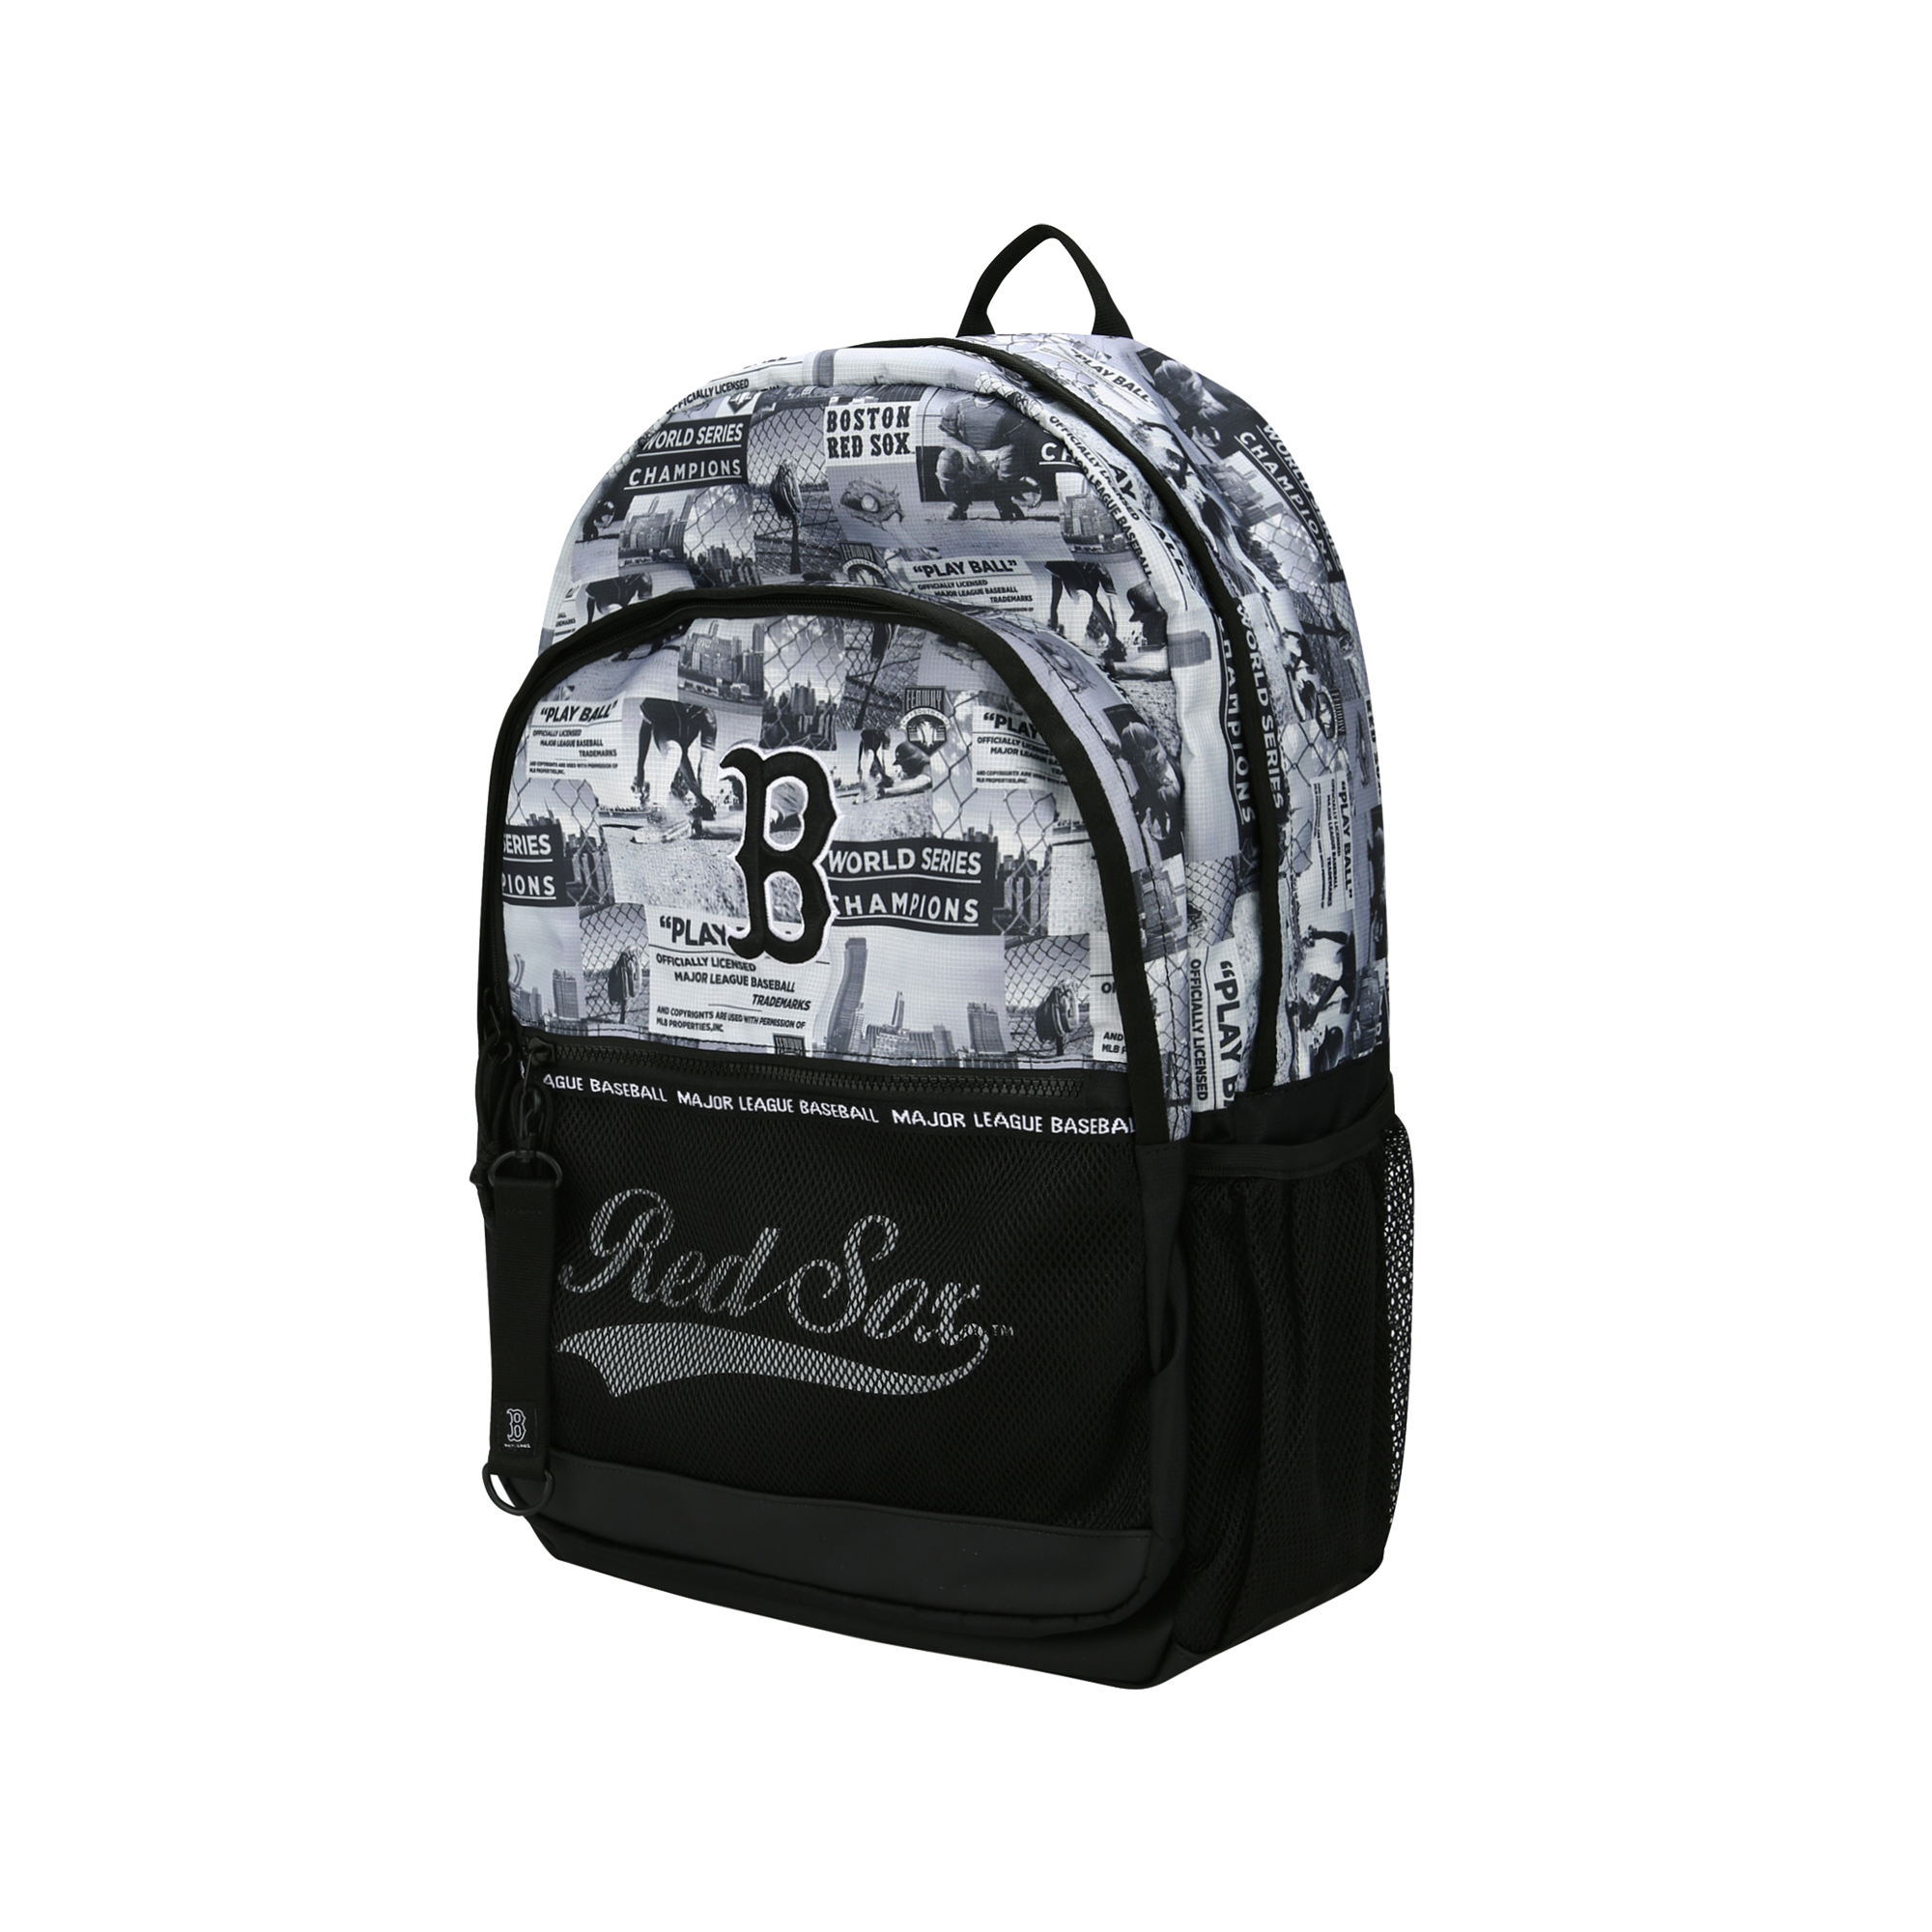 BOSTON RED SOX NEWS BACKPACK